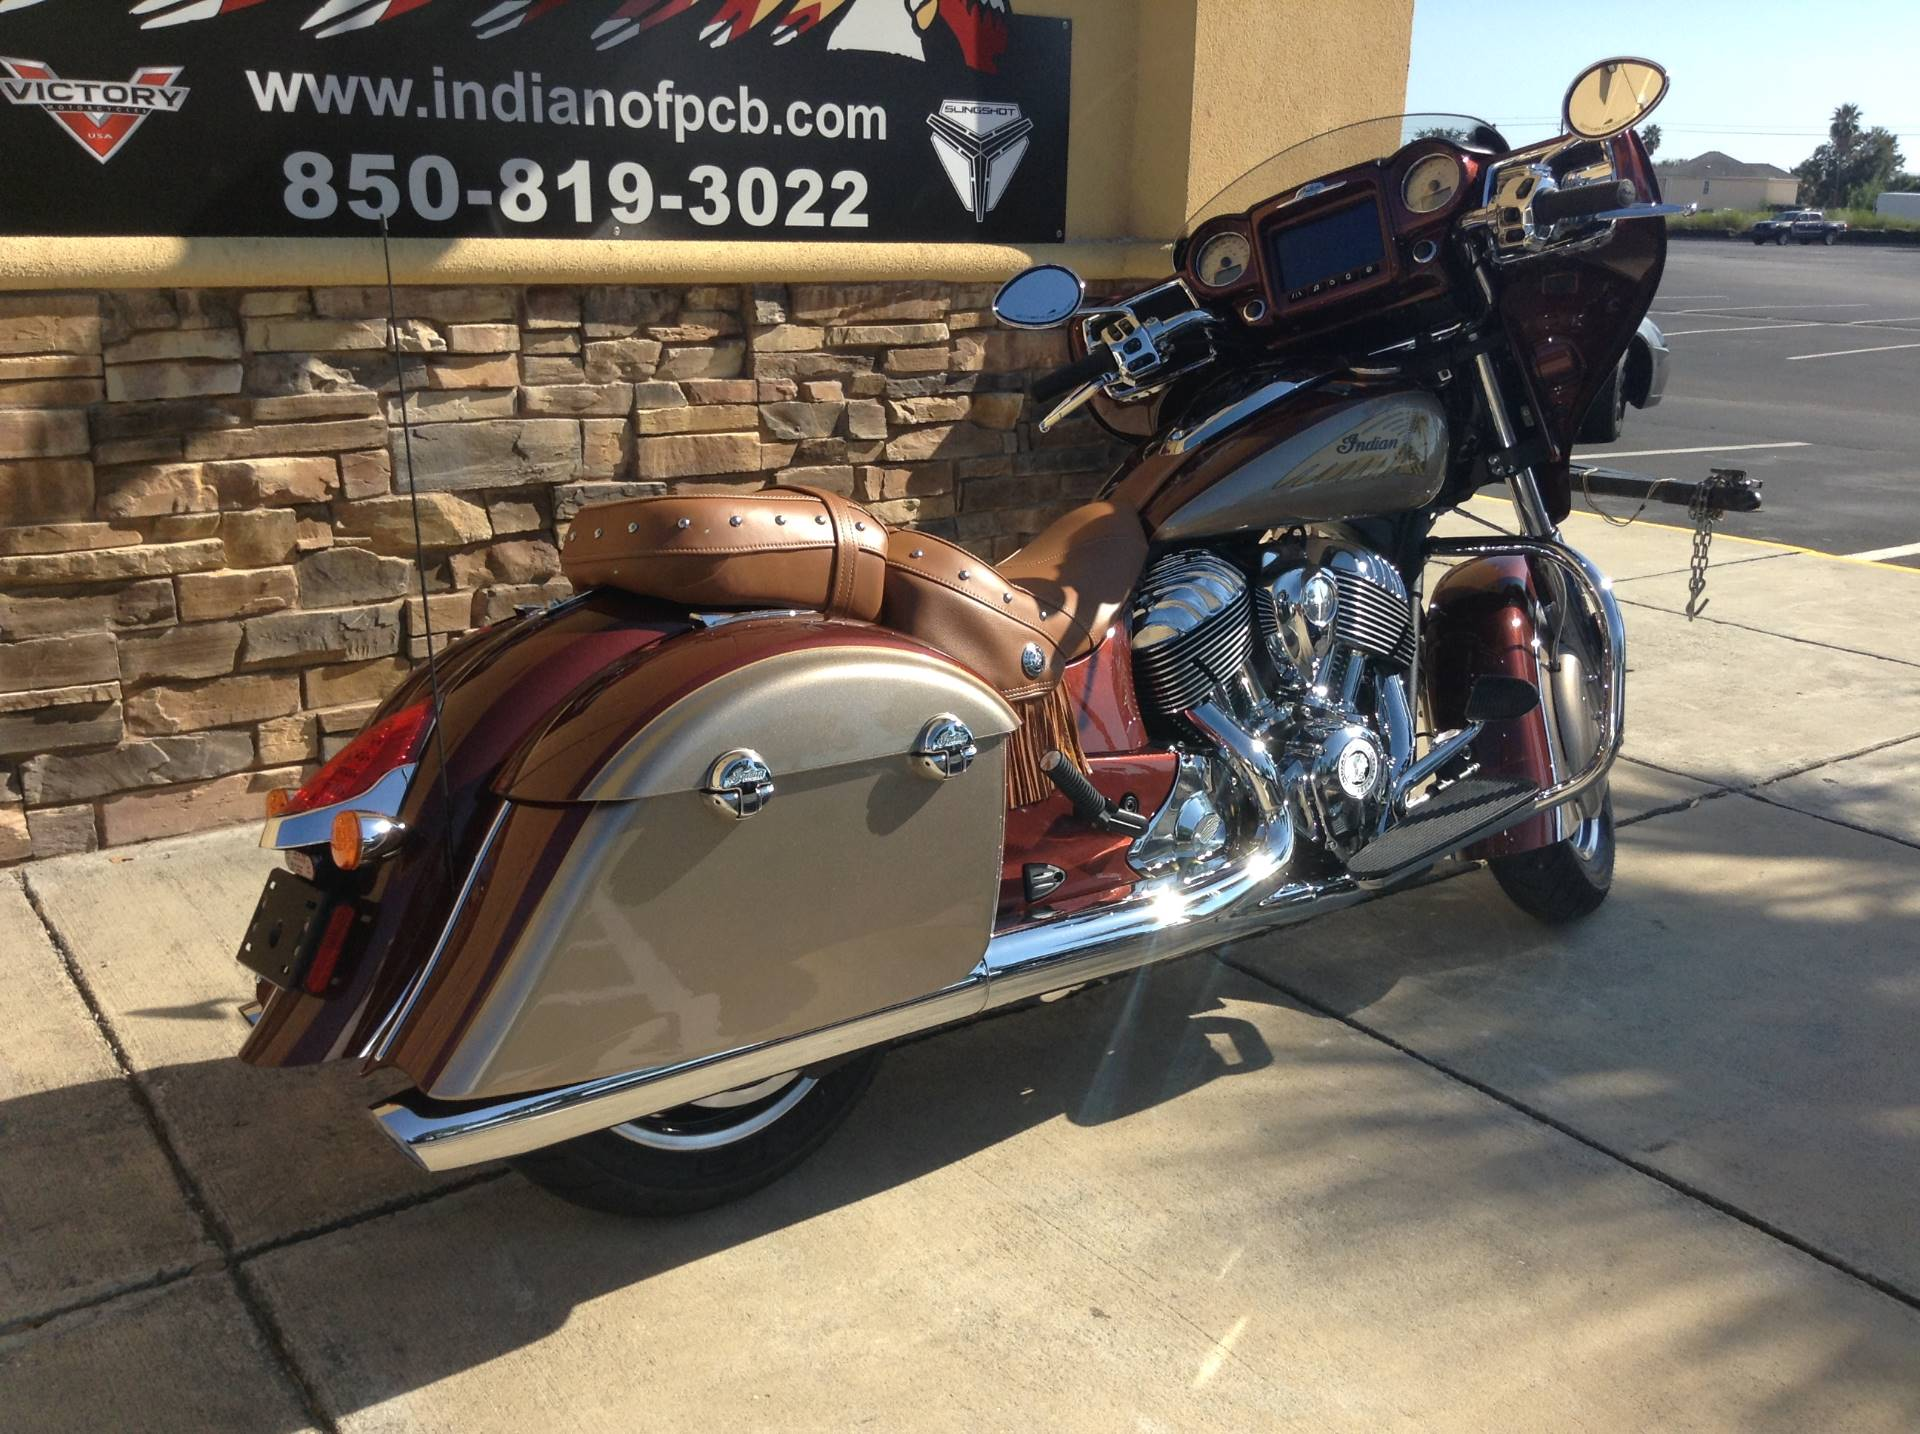 2019 Indian CHIEFTAIN CLASSIC in Panama City Beach, Florida - Photo 3